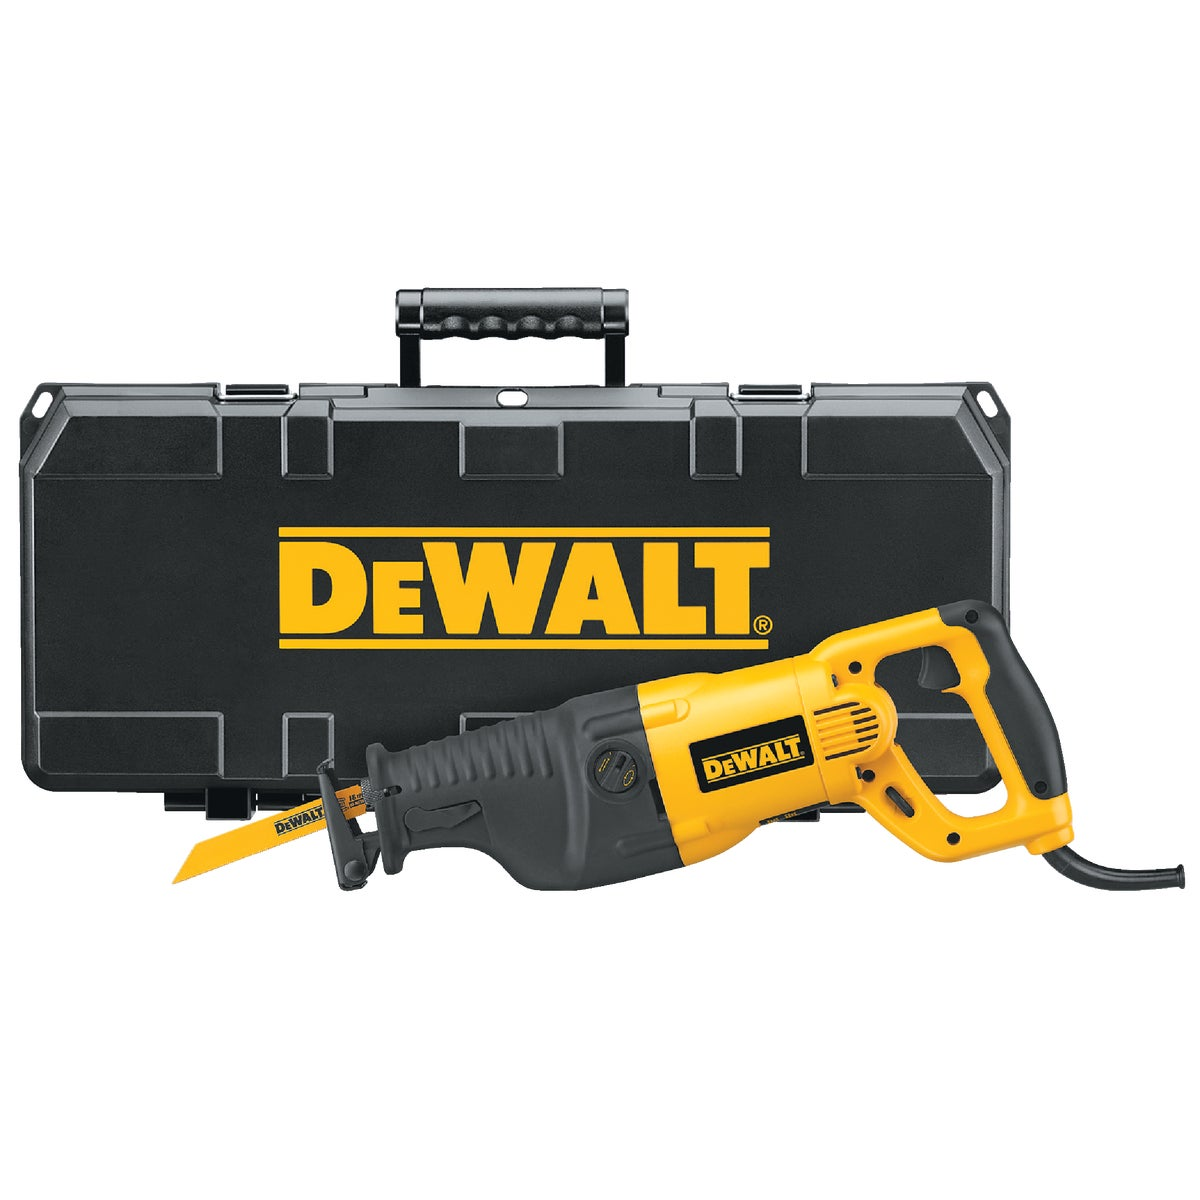 13.0A RECIPROCATING SAW - DW311K by DeWalt